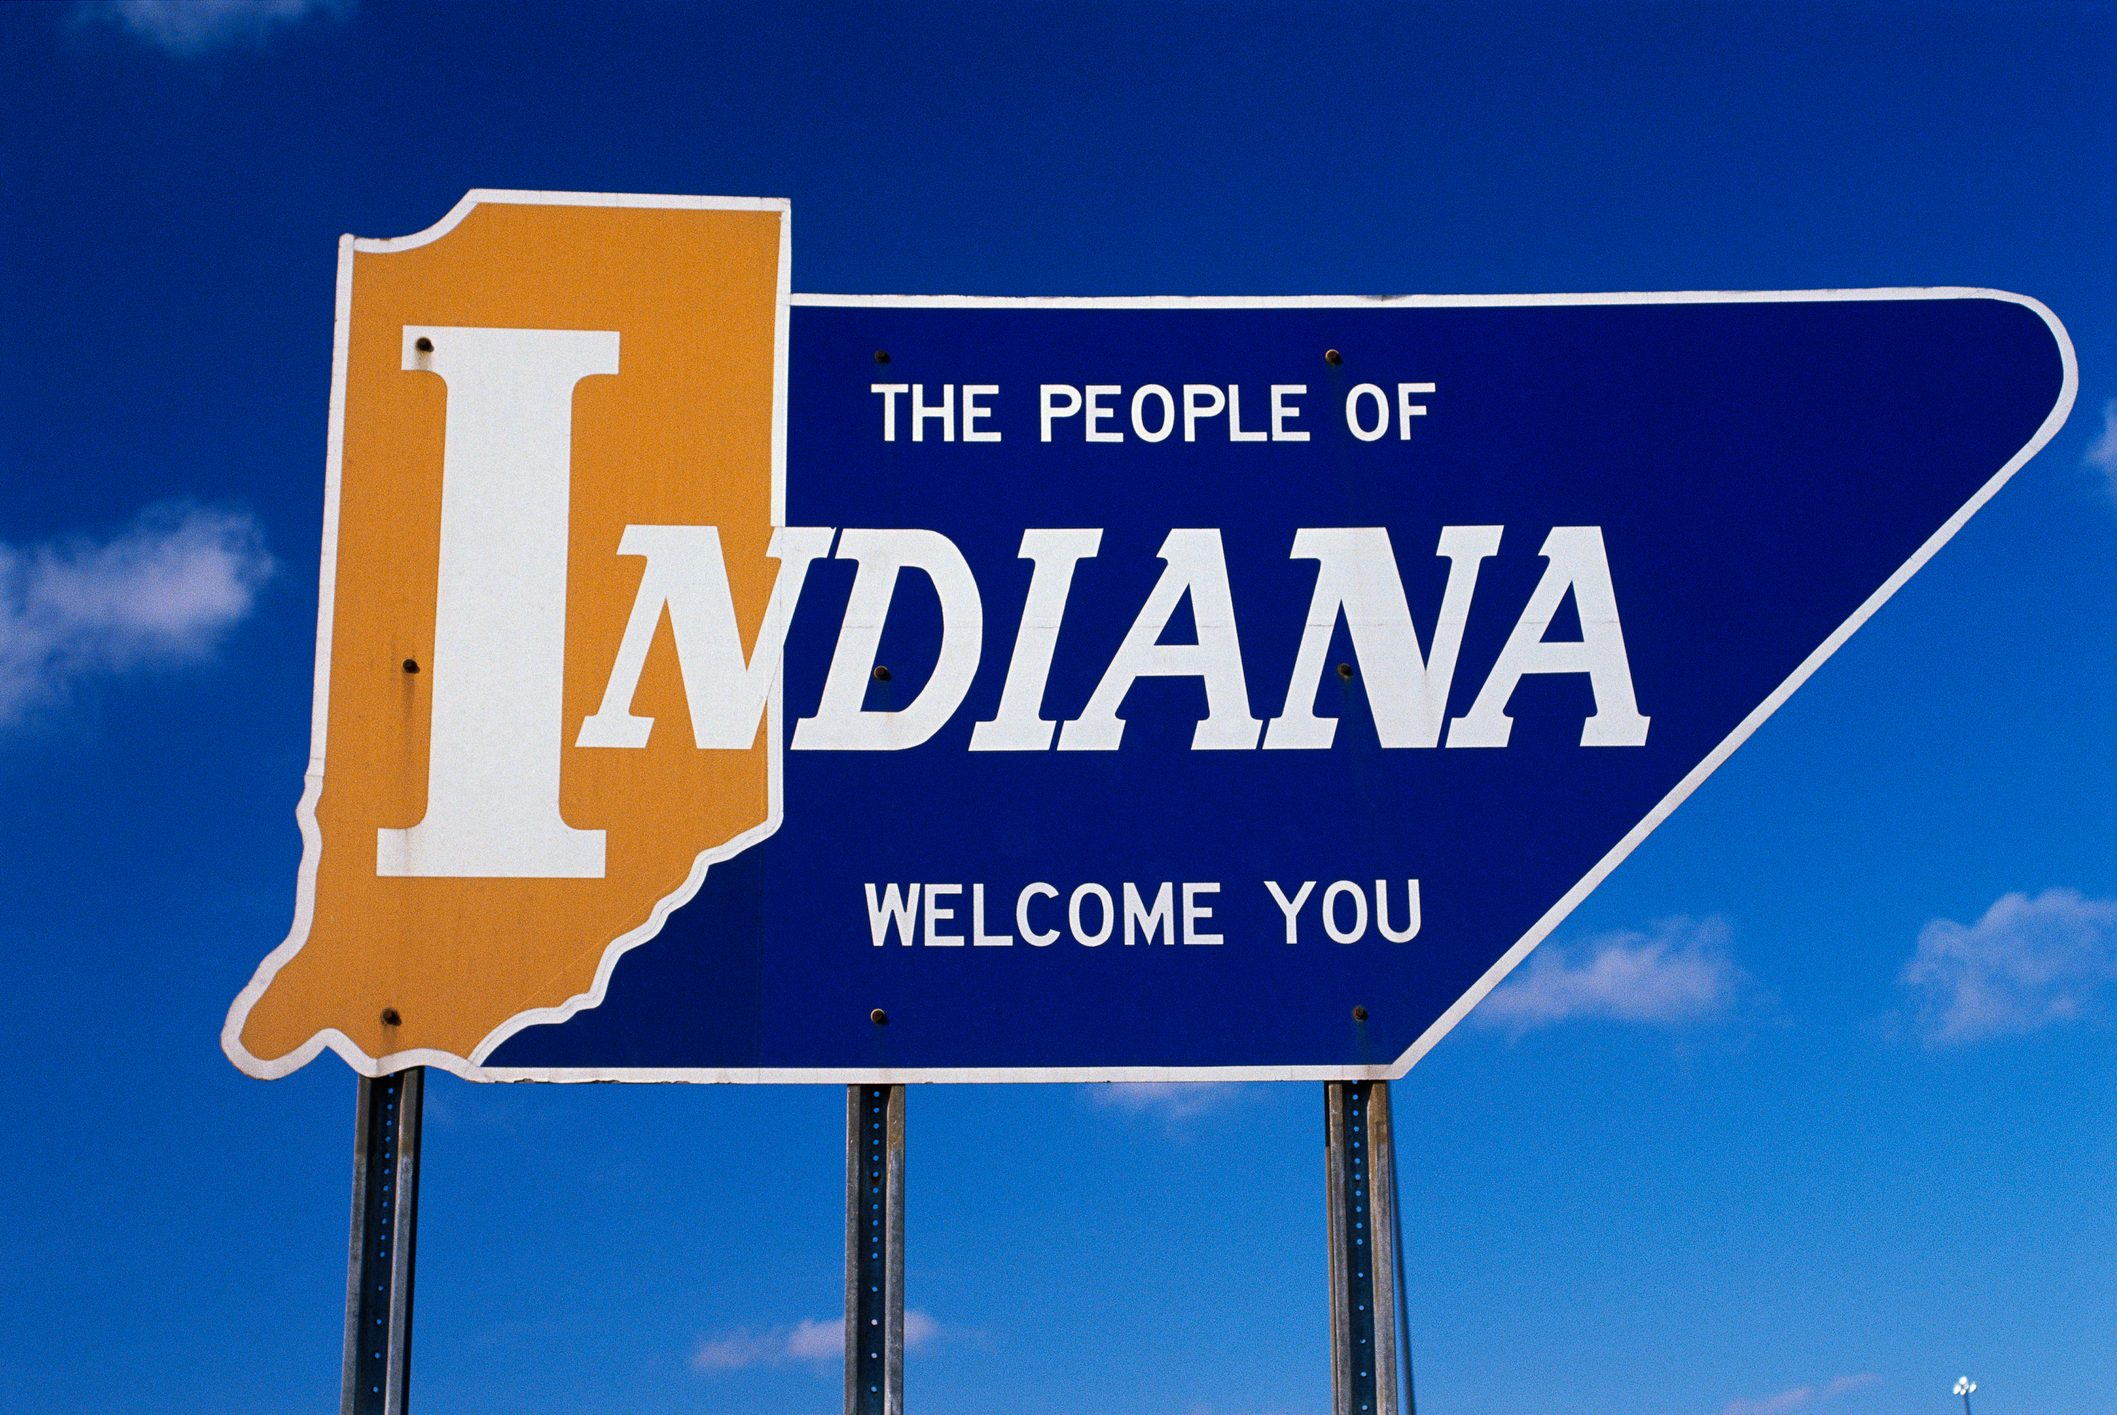 Road sign that says the people of Indiana welcome you